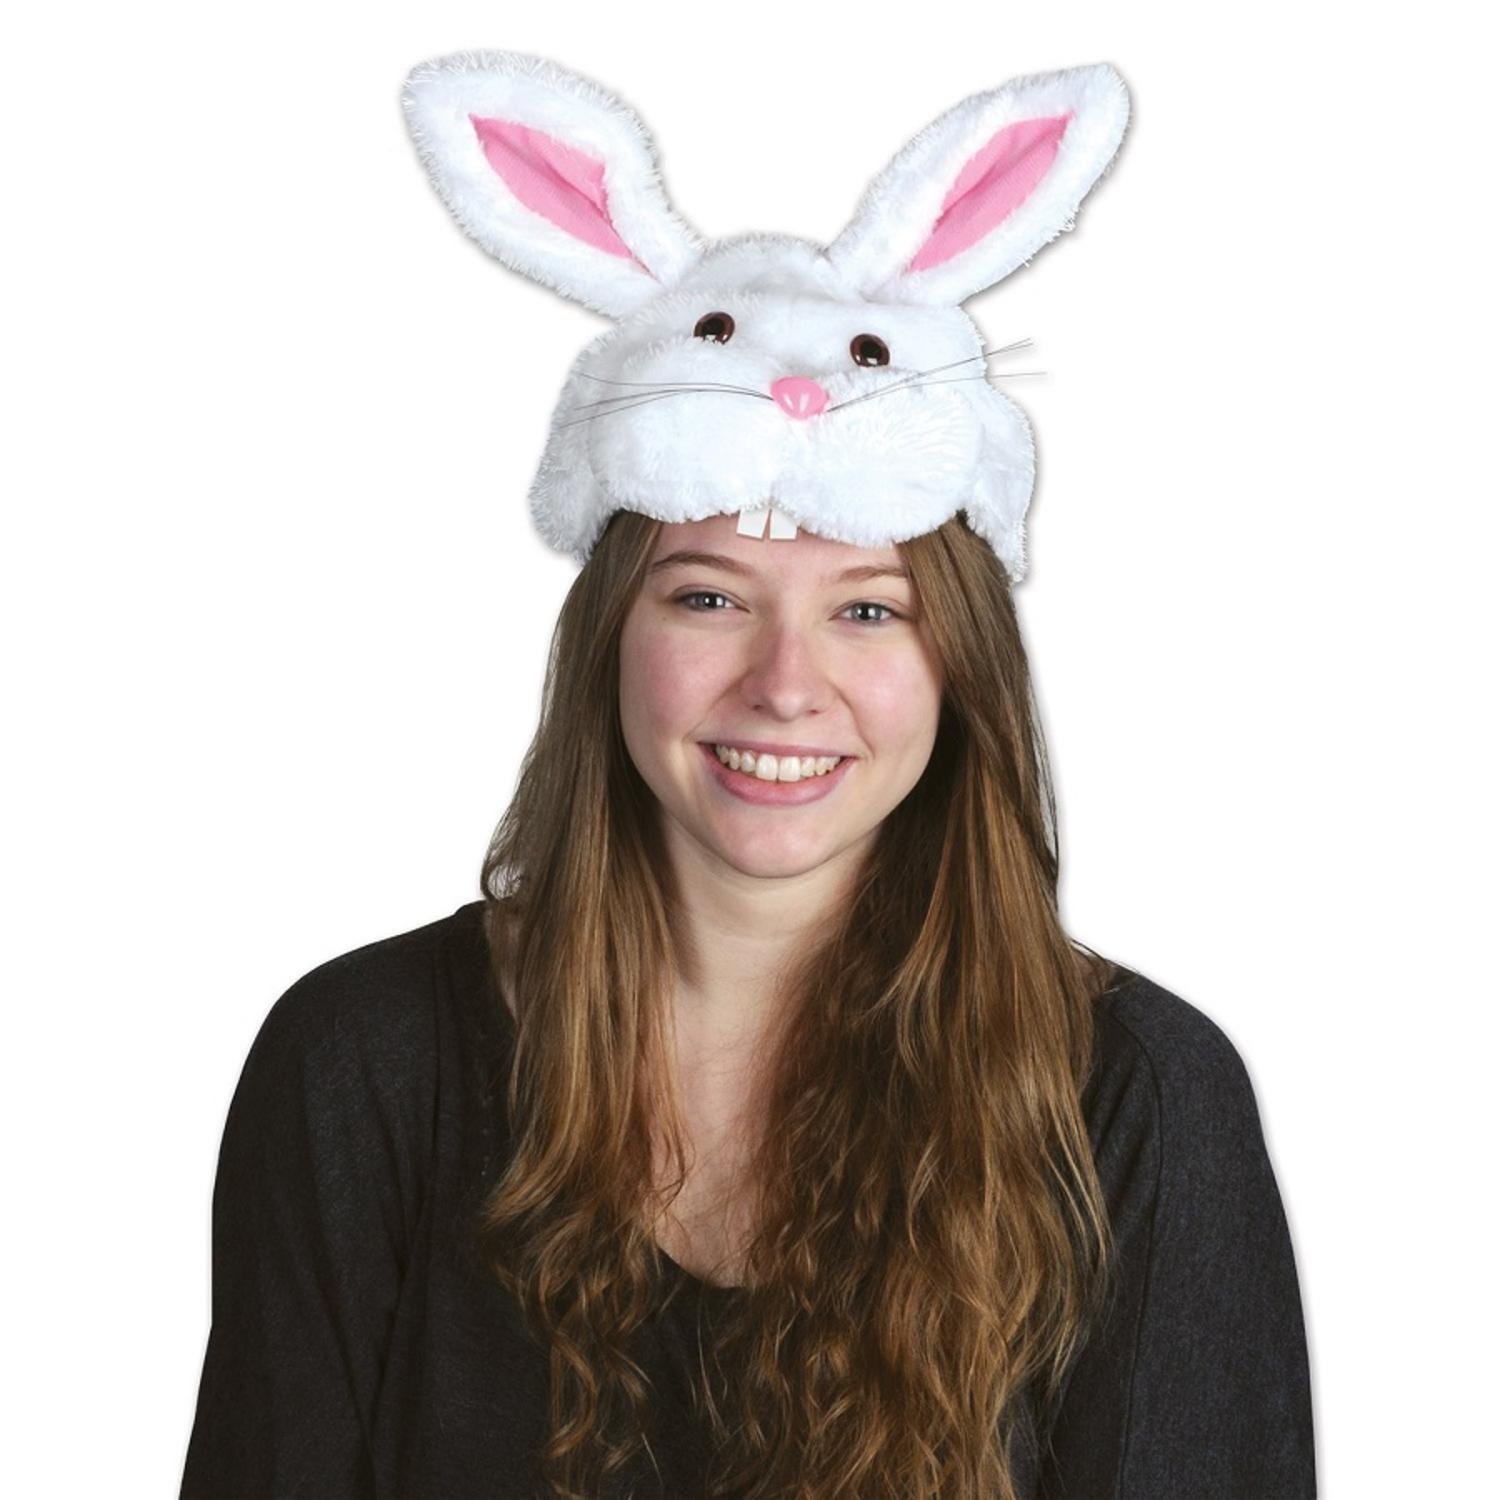 Pack of 12 Plush Bunny Head Hat Easter Costume Accessories by Party Central